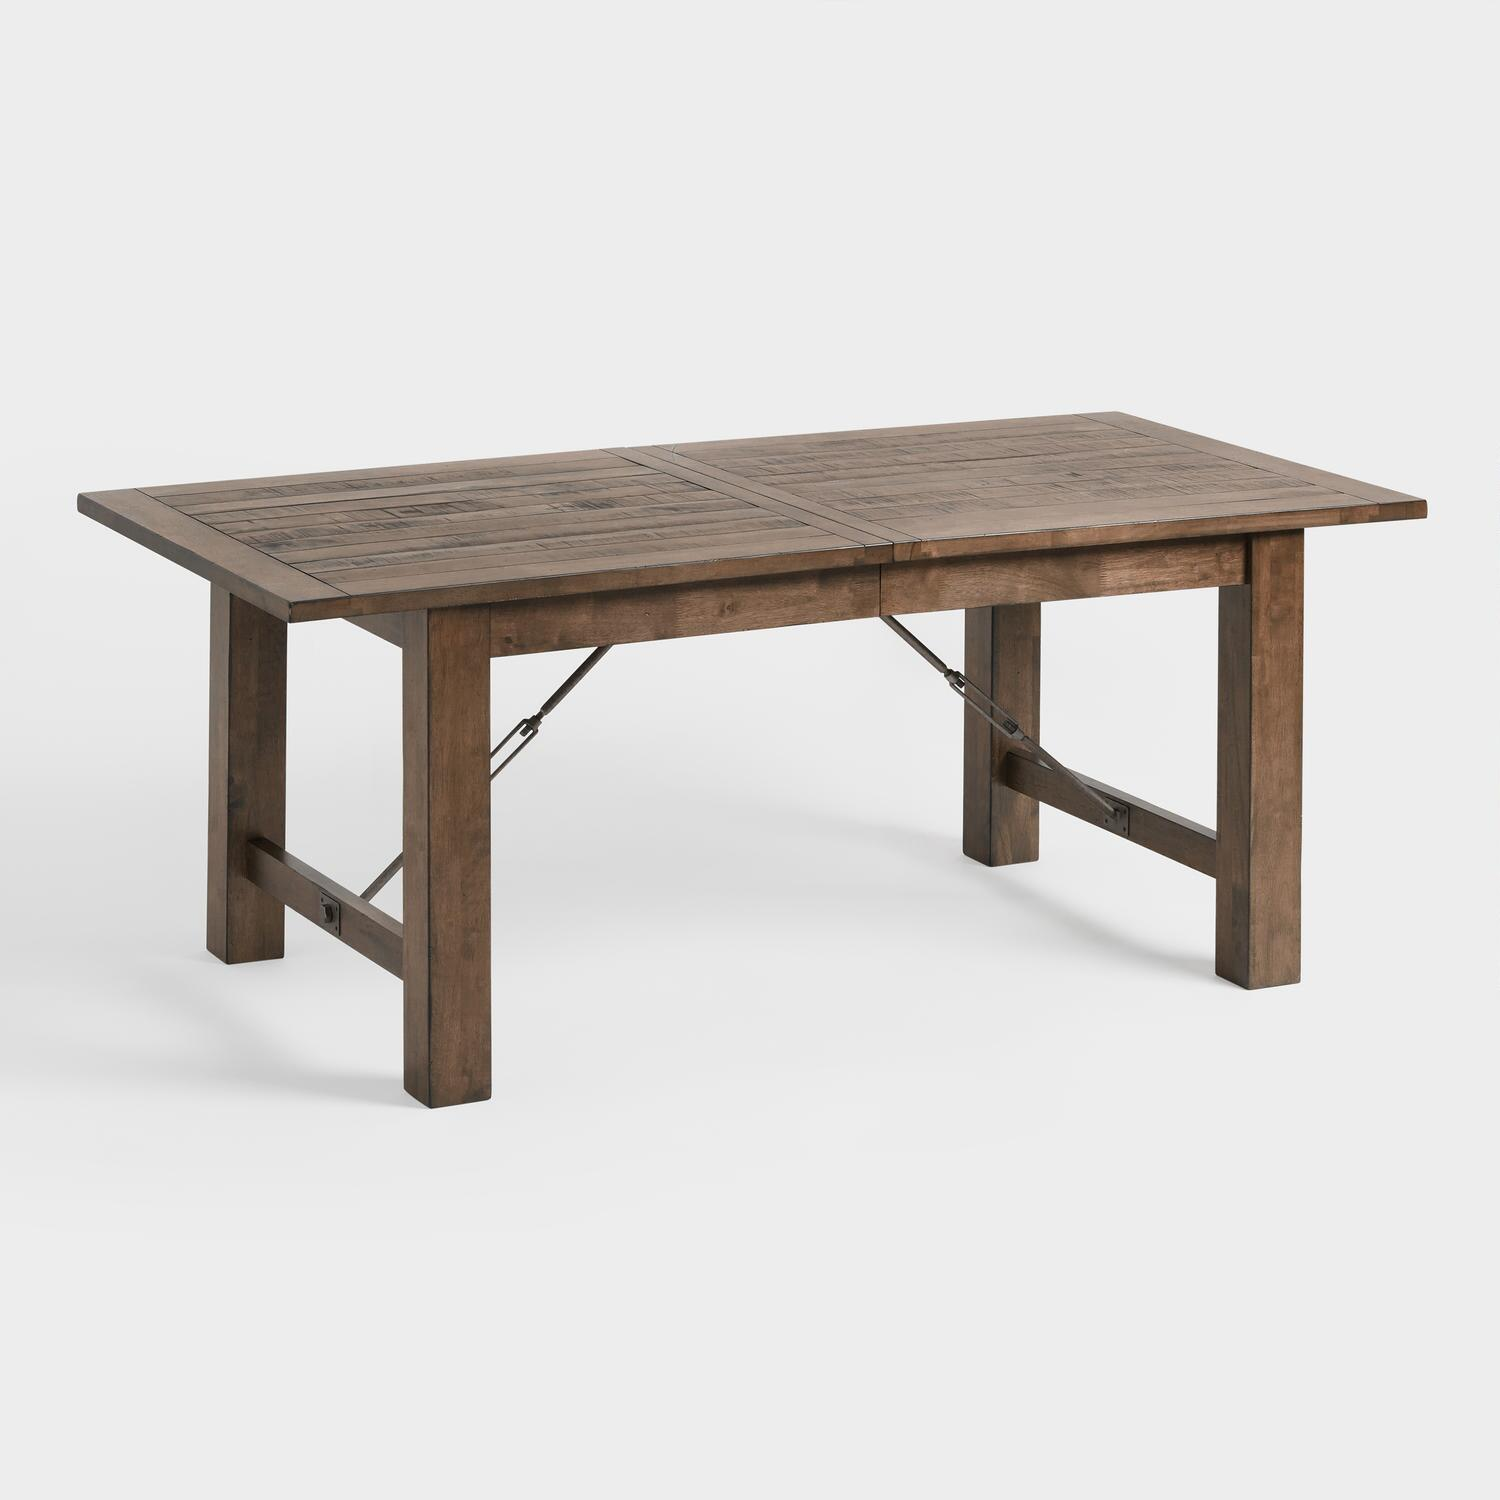 Dining Room Table Dining Room Tables Rustic Wood Farmhouse Style World Market